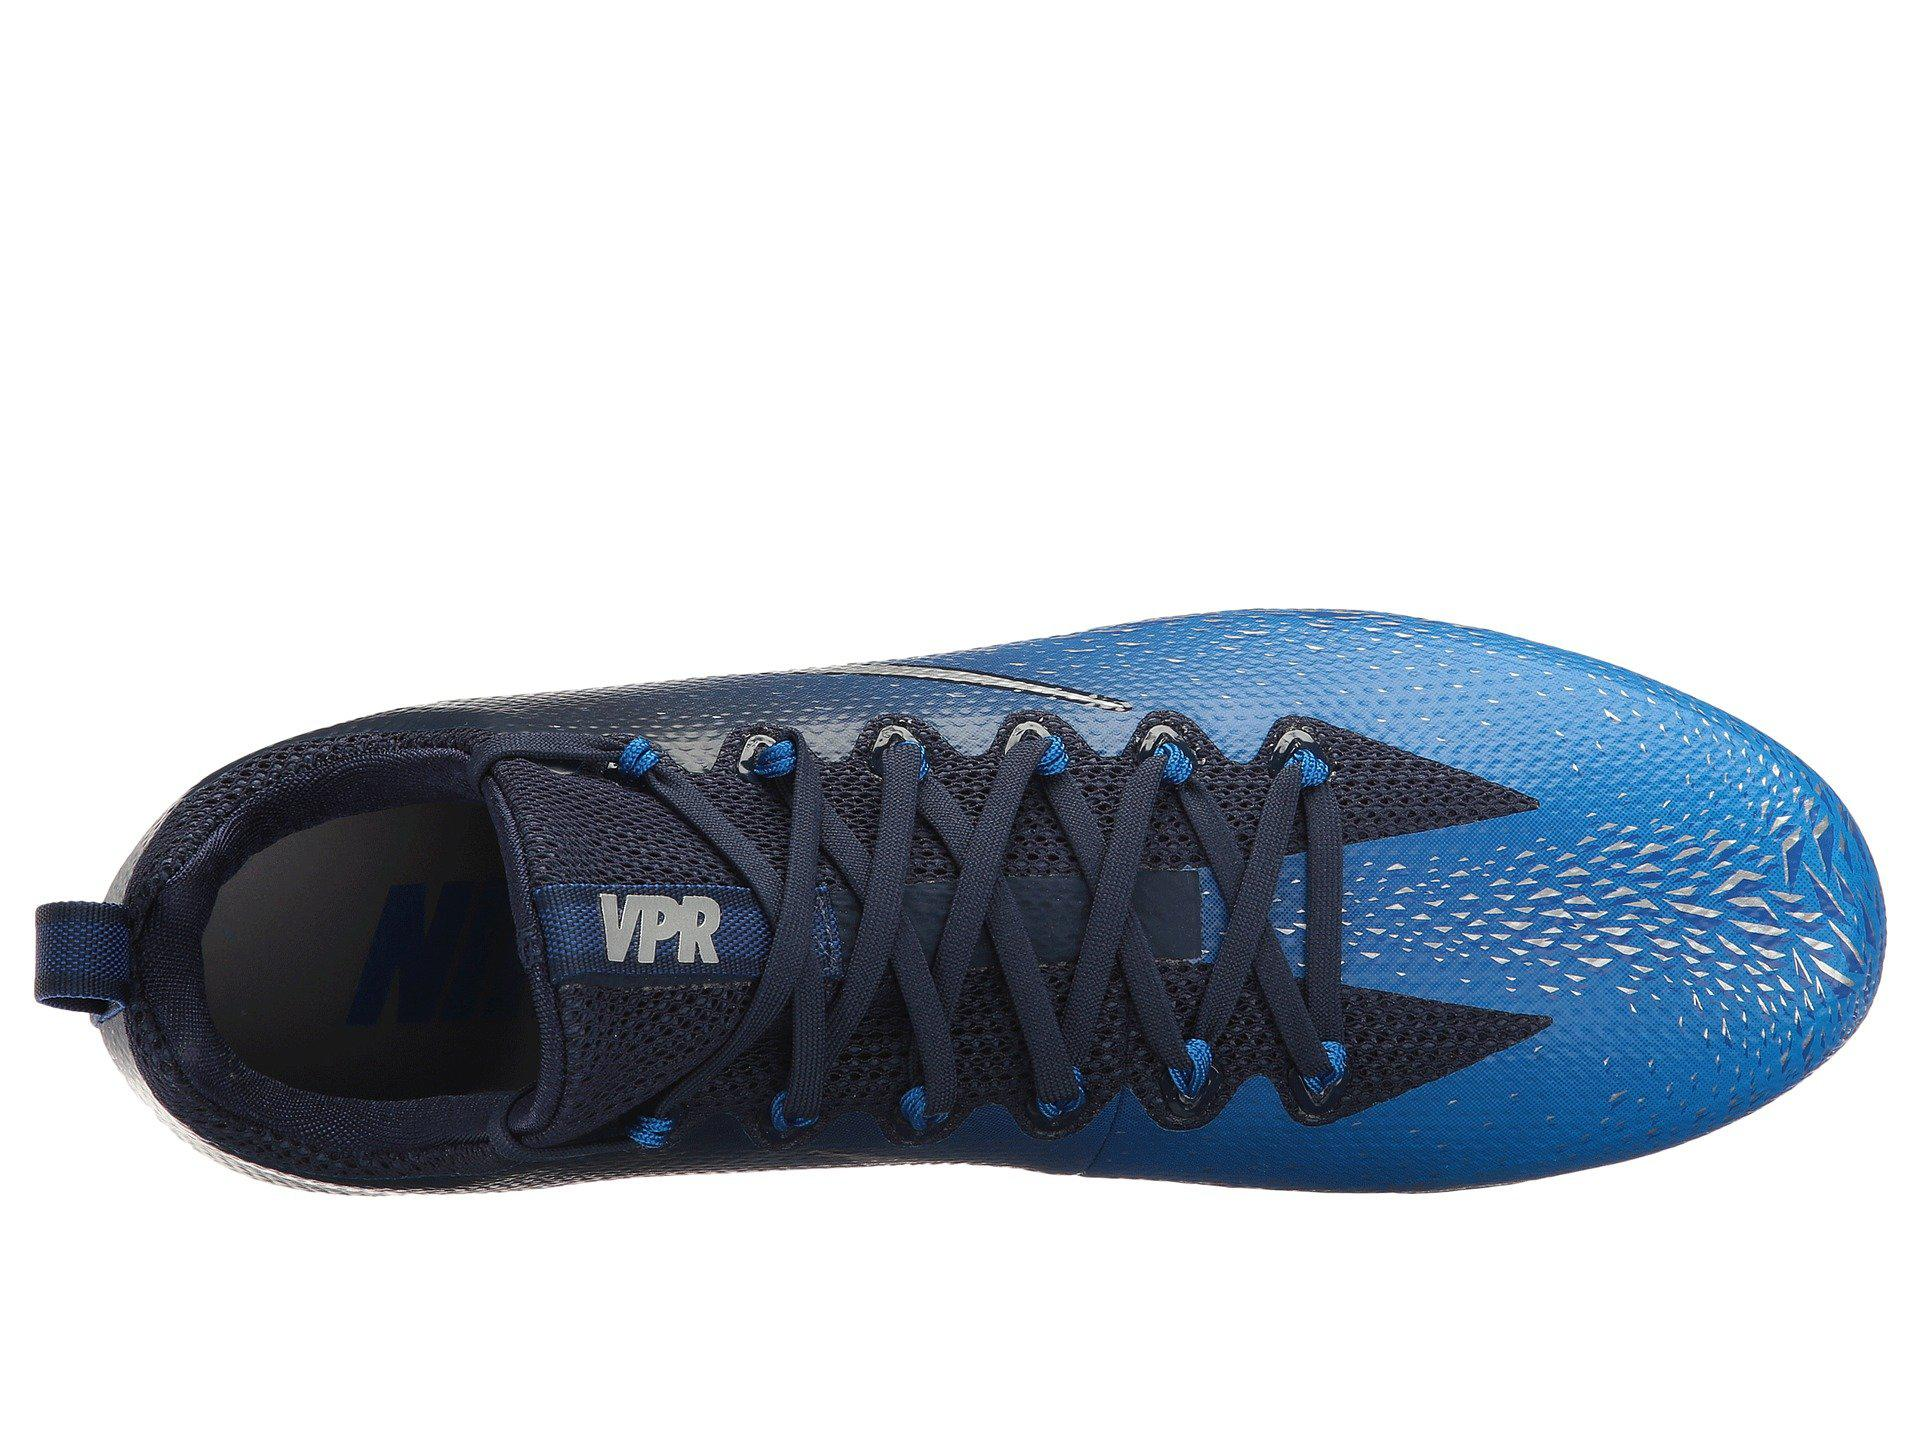 1d45d4bae9409c Nike - Blue Vapor Untouchable Pro for Men - Lyst. View fullscreen